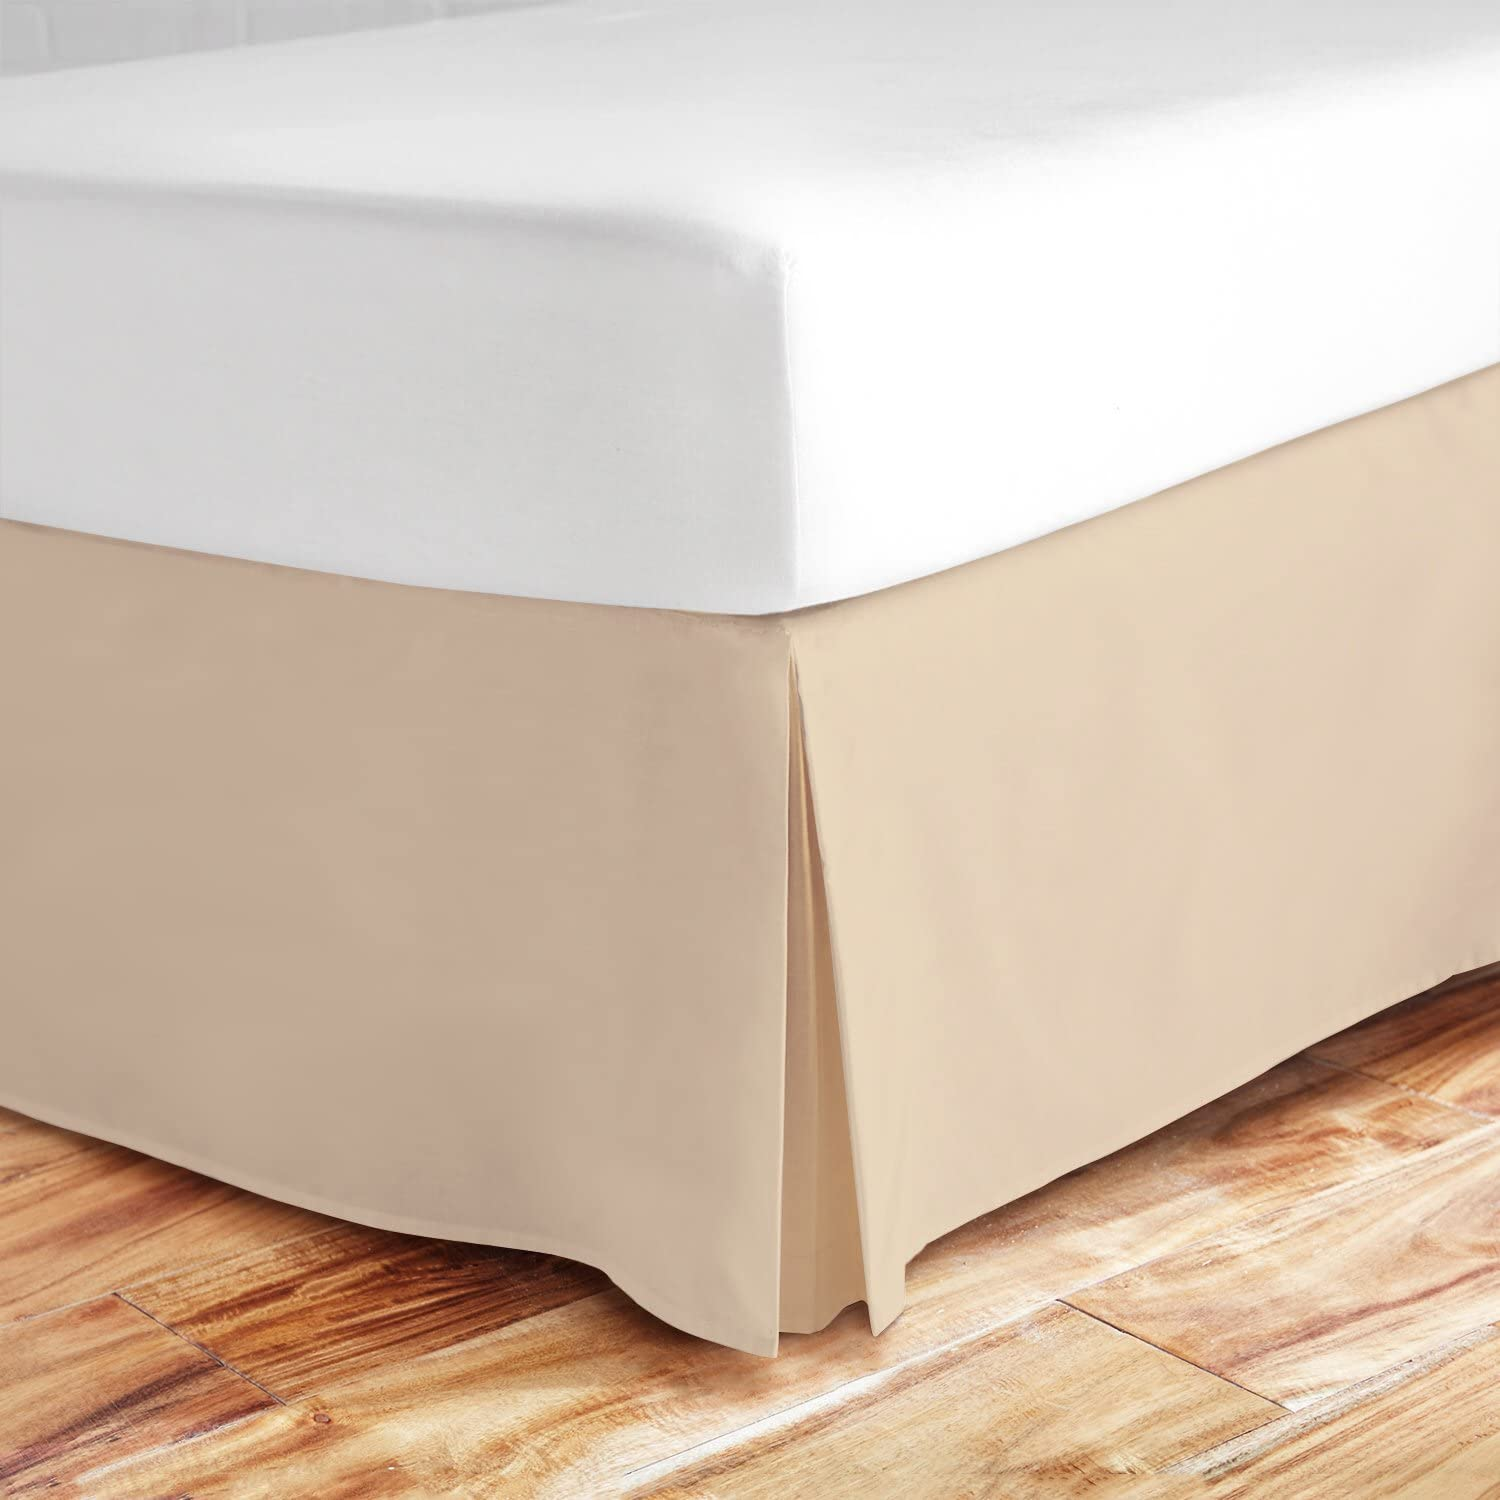 Zen Bamboo Ultra Soft Bed Skirt - Premium, Eco-friendly, Hypoallergenic, and Wrinkle Resistant Rayon Derived From Bamboo Dust Ruffle with 15-inch Drop - King - Cream